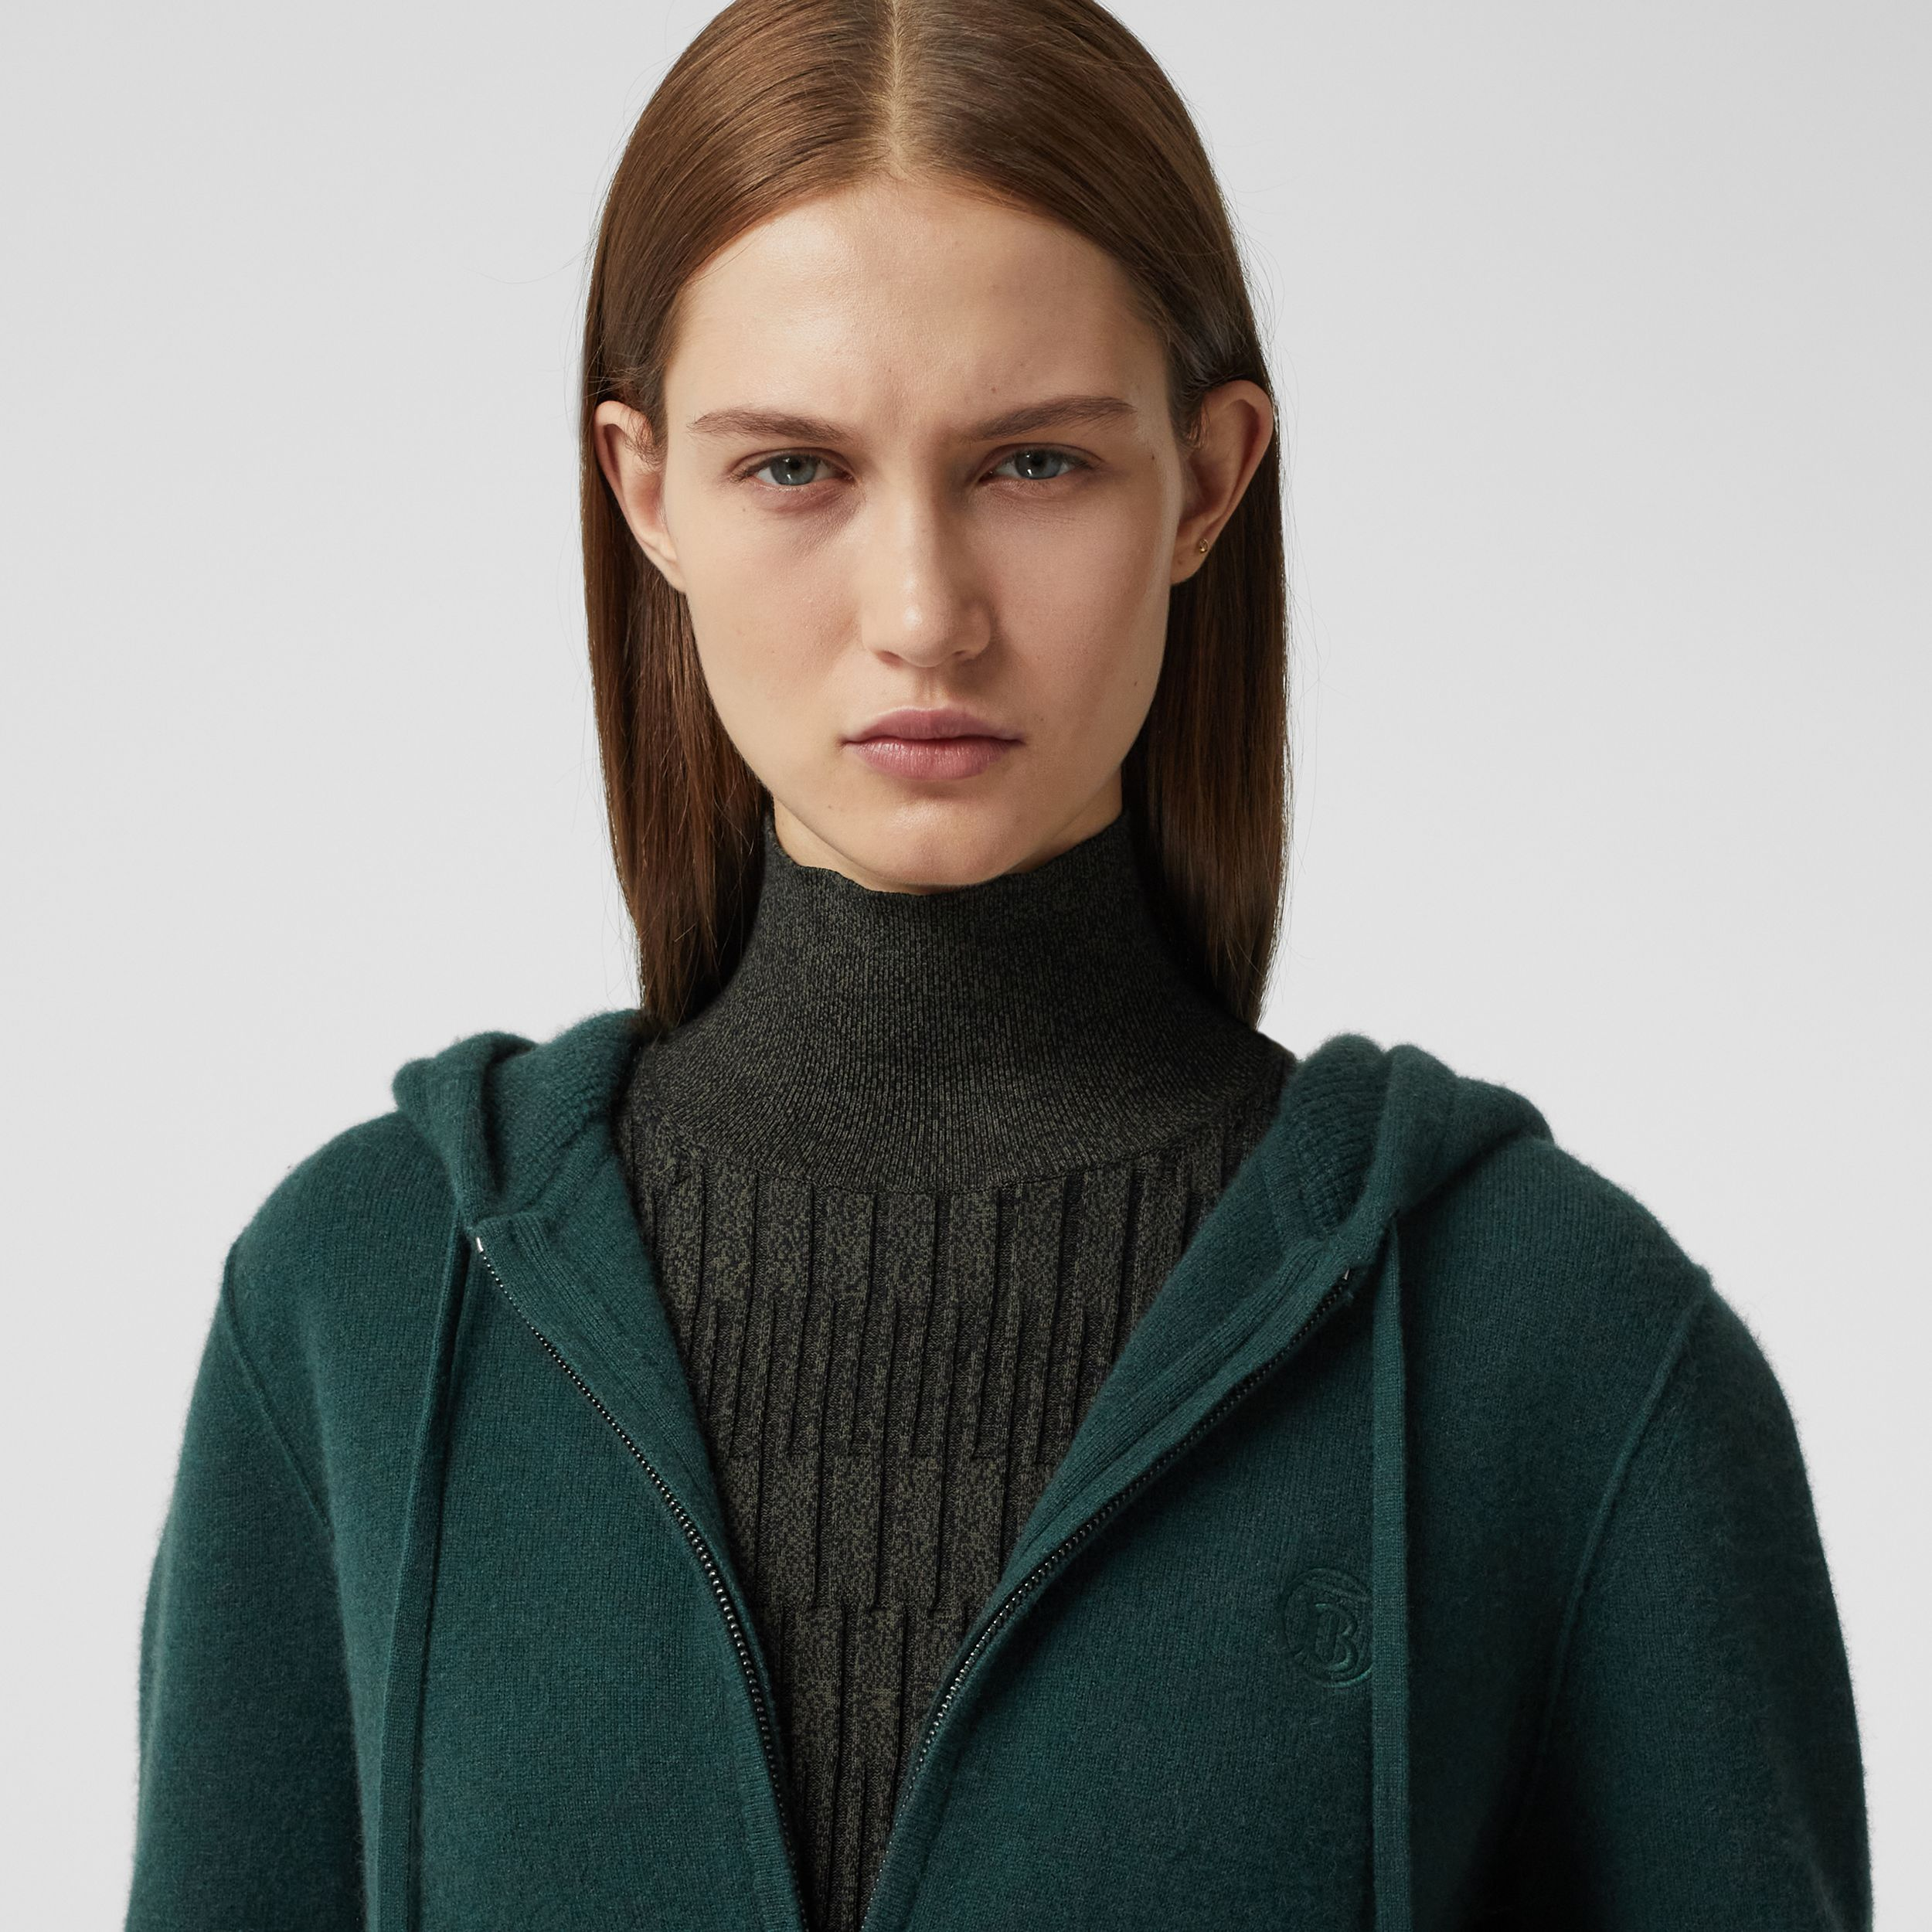 Monogram Motif Cashmere Blend Hooded Top in Bottle Green - Women | Burberry - 2